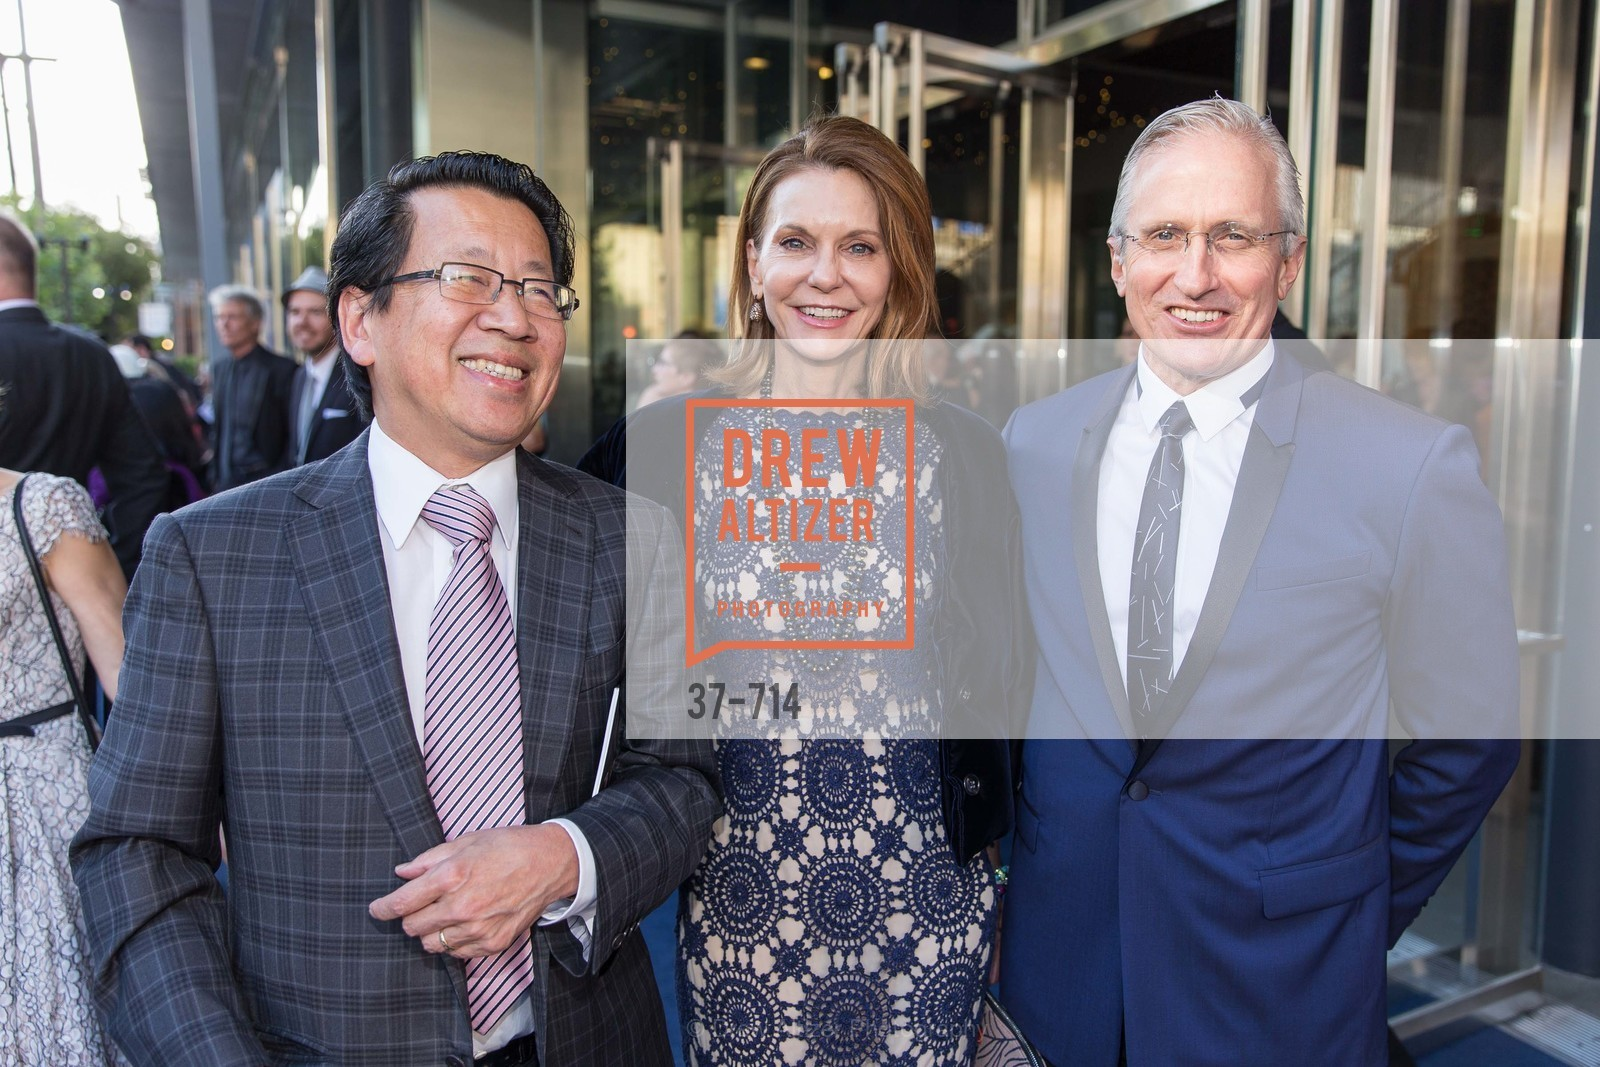 Ben Fong-Torres, Penny Coulter, Jim Coulter, SFJAZZ Gala 2015 Honors Joni Mitchell with Lifetime Achievement Award, US, May 9th, 2015,Drew Altizer, Drew Altizer Photography, full-service agency, private events, San Francisco photographer, photographer california